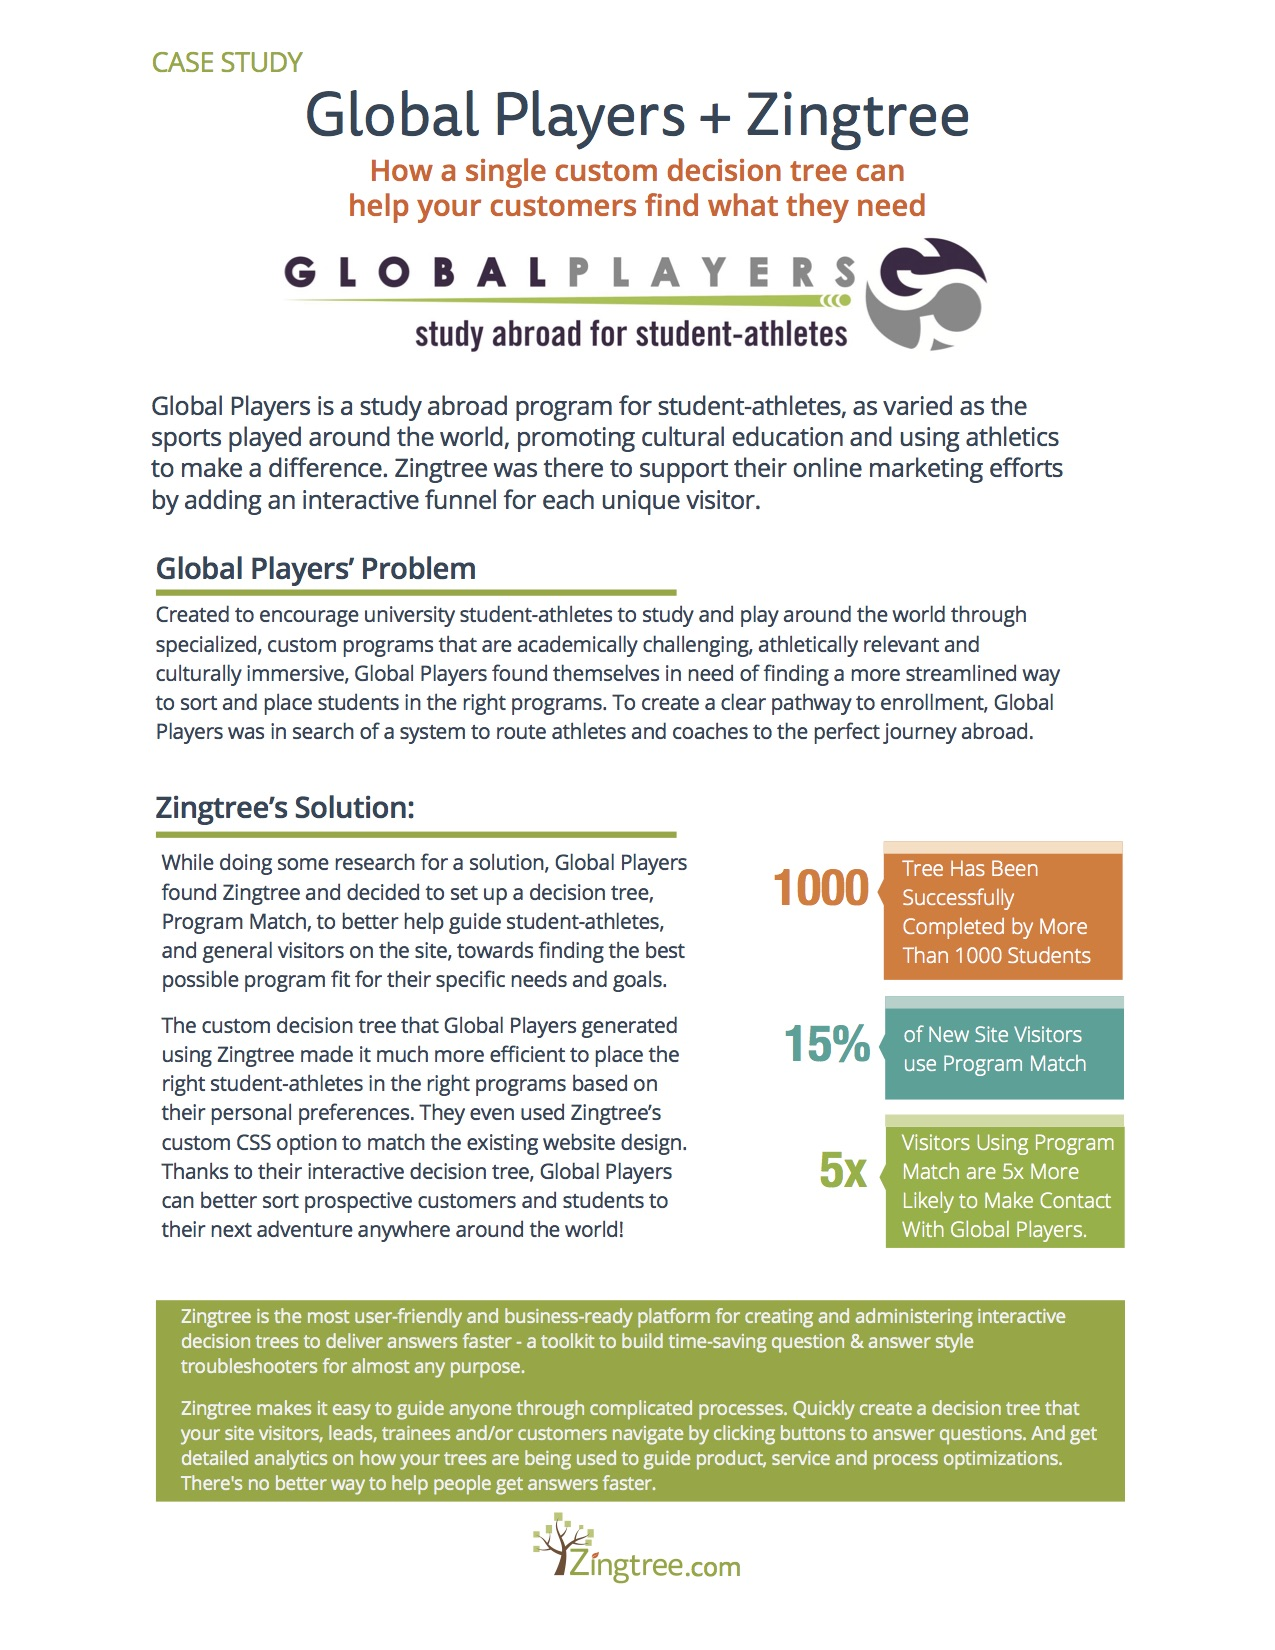 Marketing Case Study: Global Players